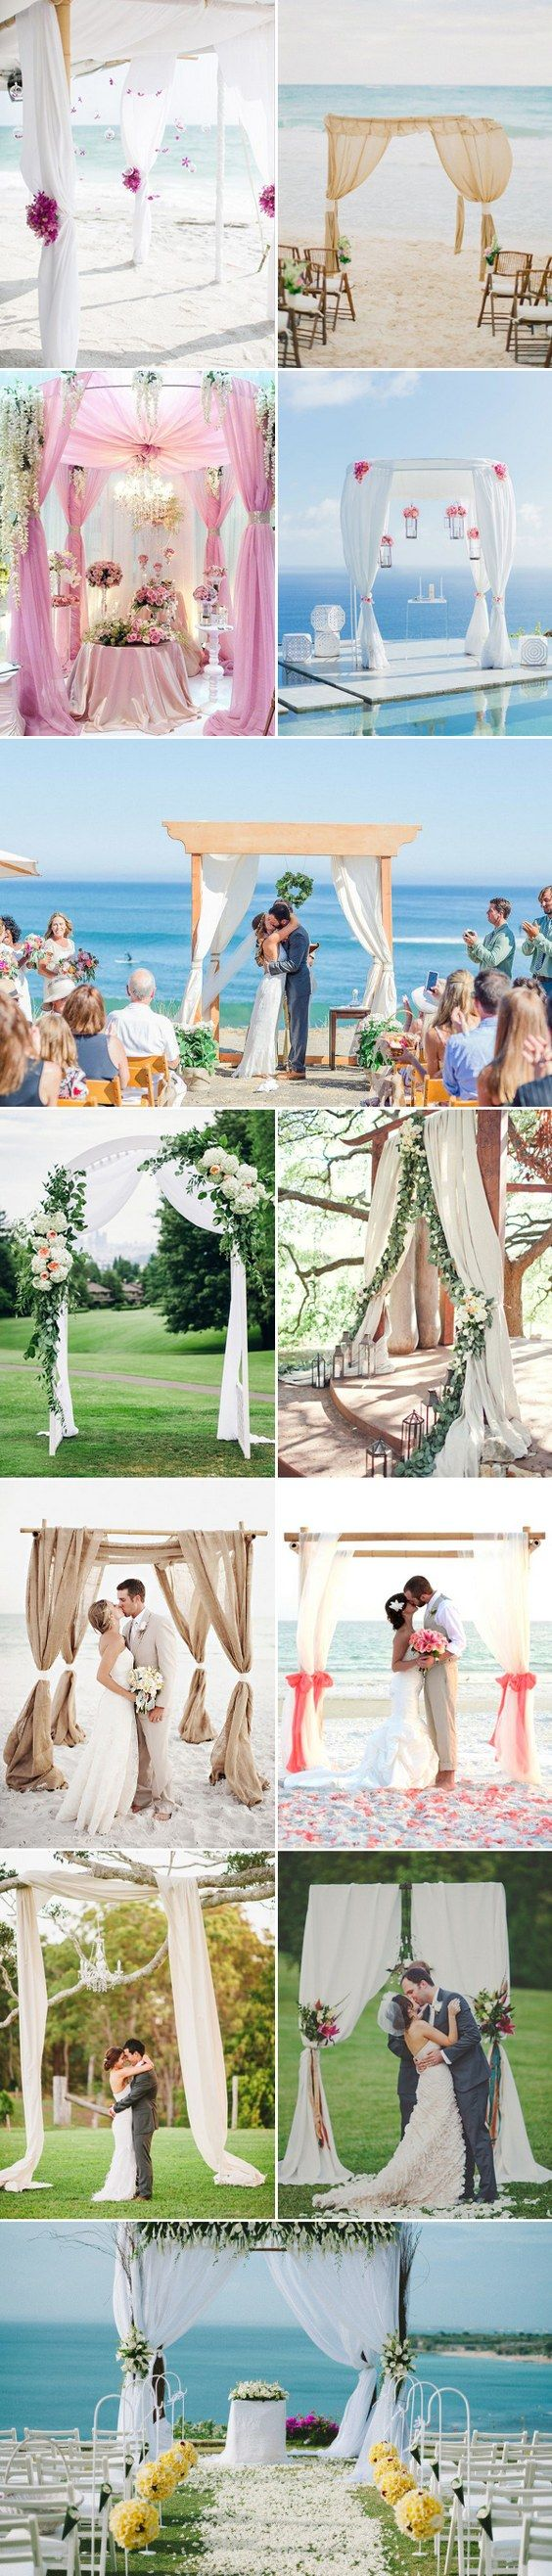 Drape Decor Beach Wedding Arches / http://www.himisspuff.com/wedding-arches-wedding-canopies/8/